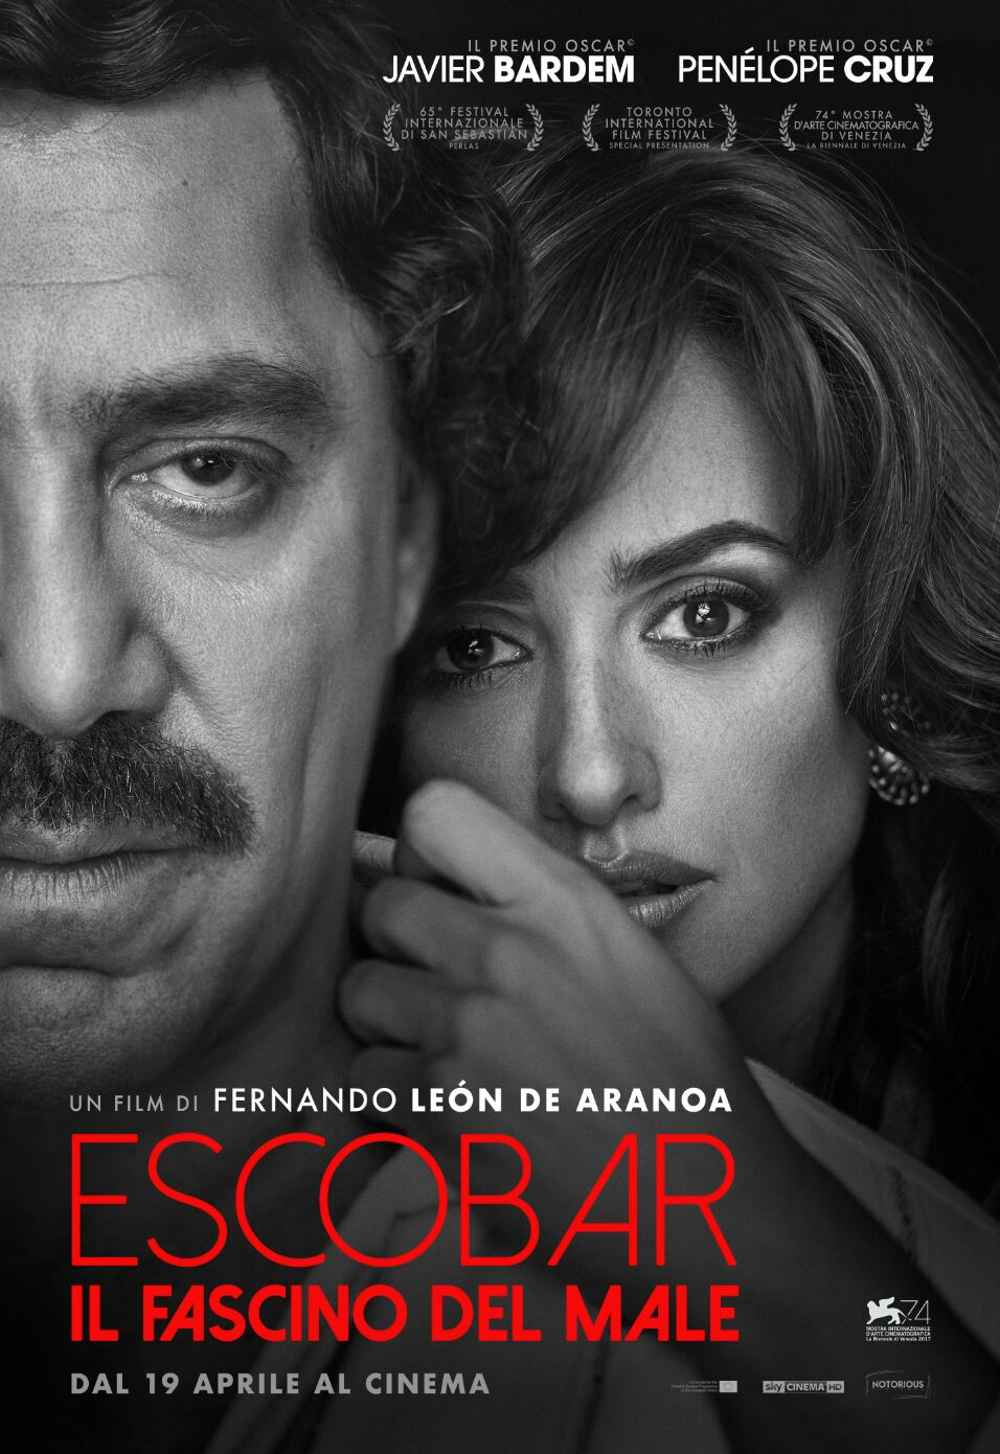 Escobar il fascino del male